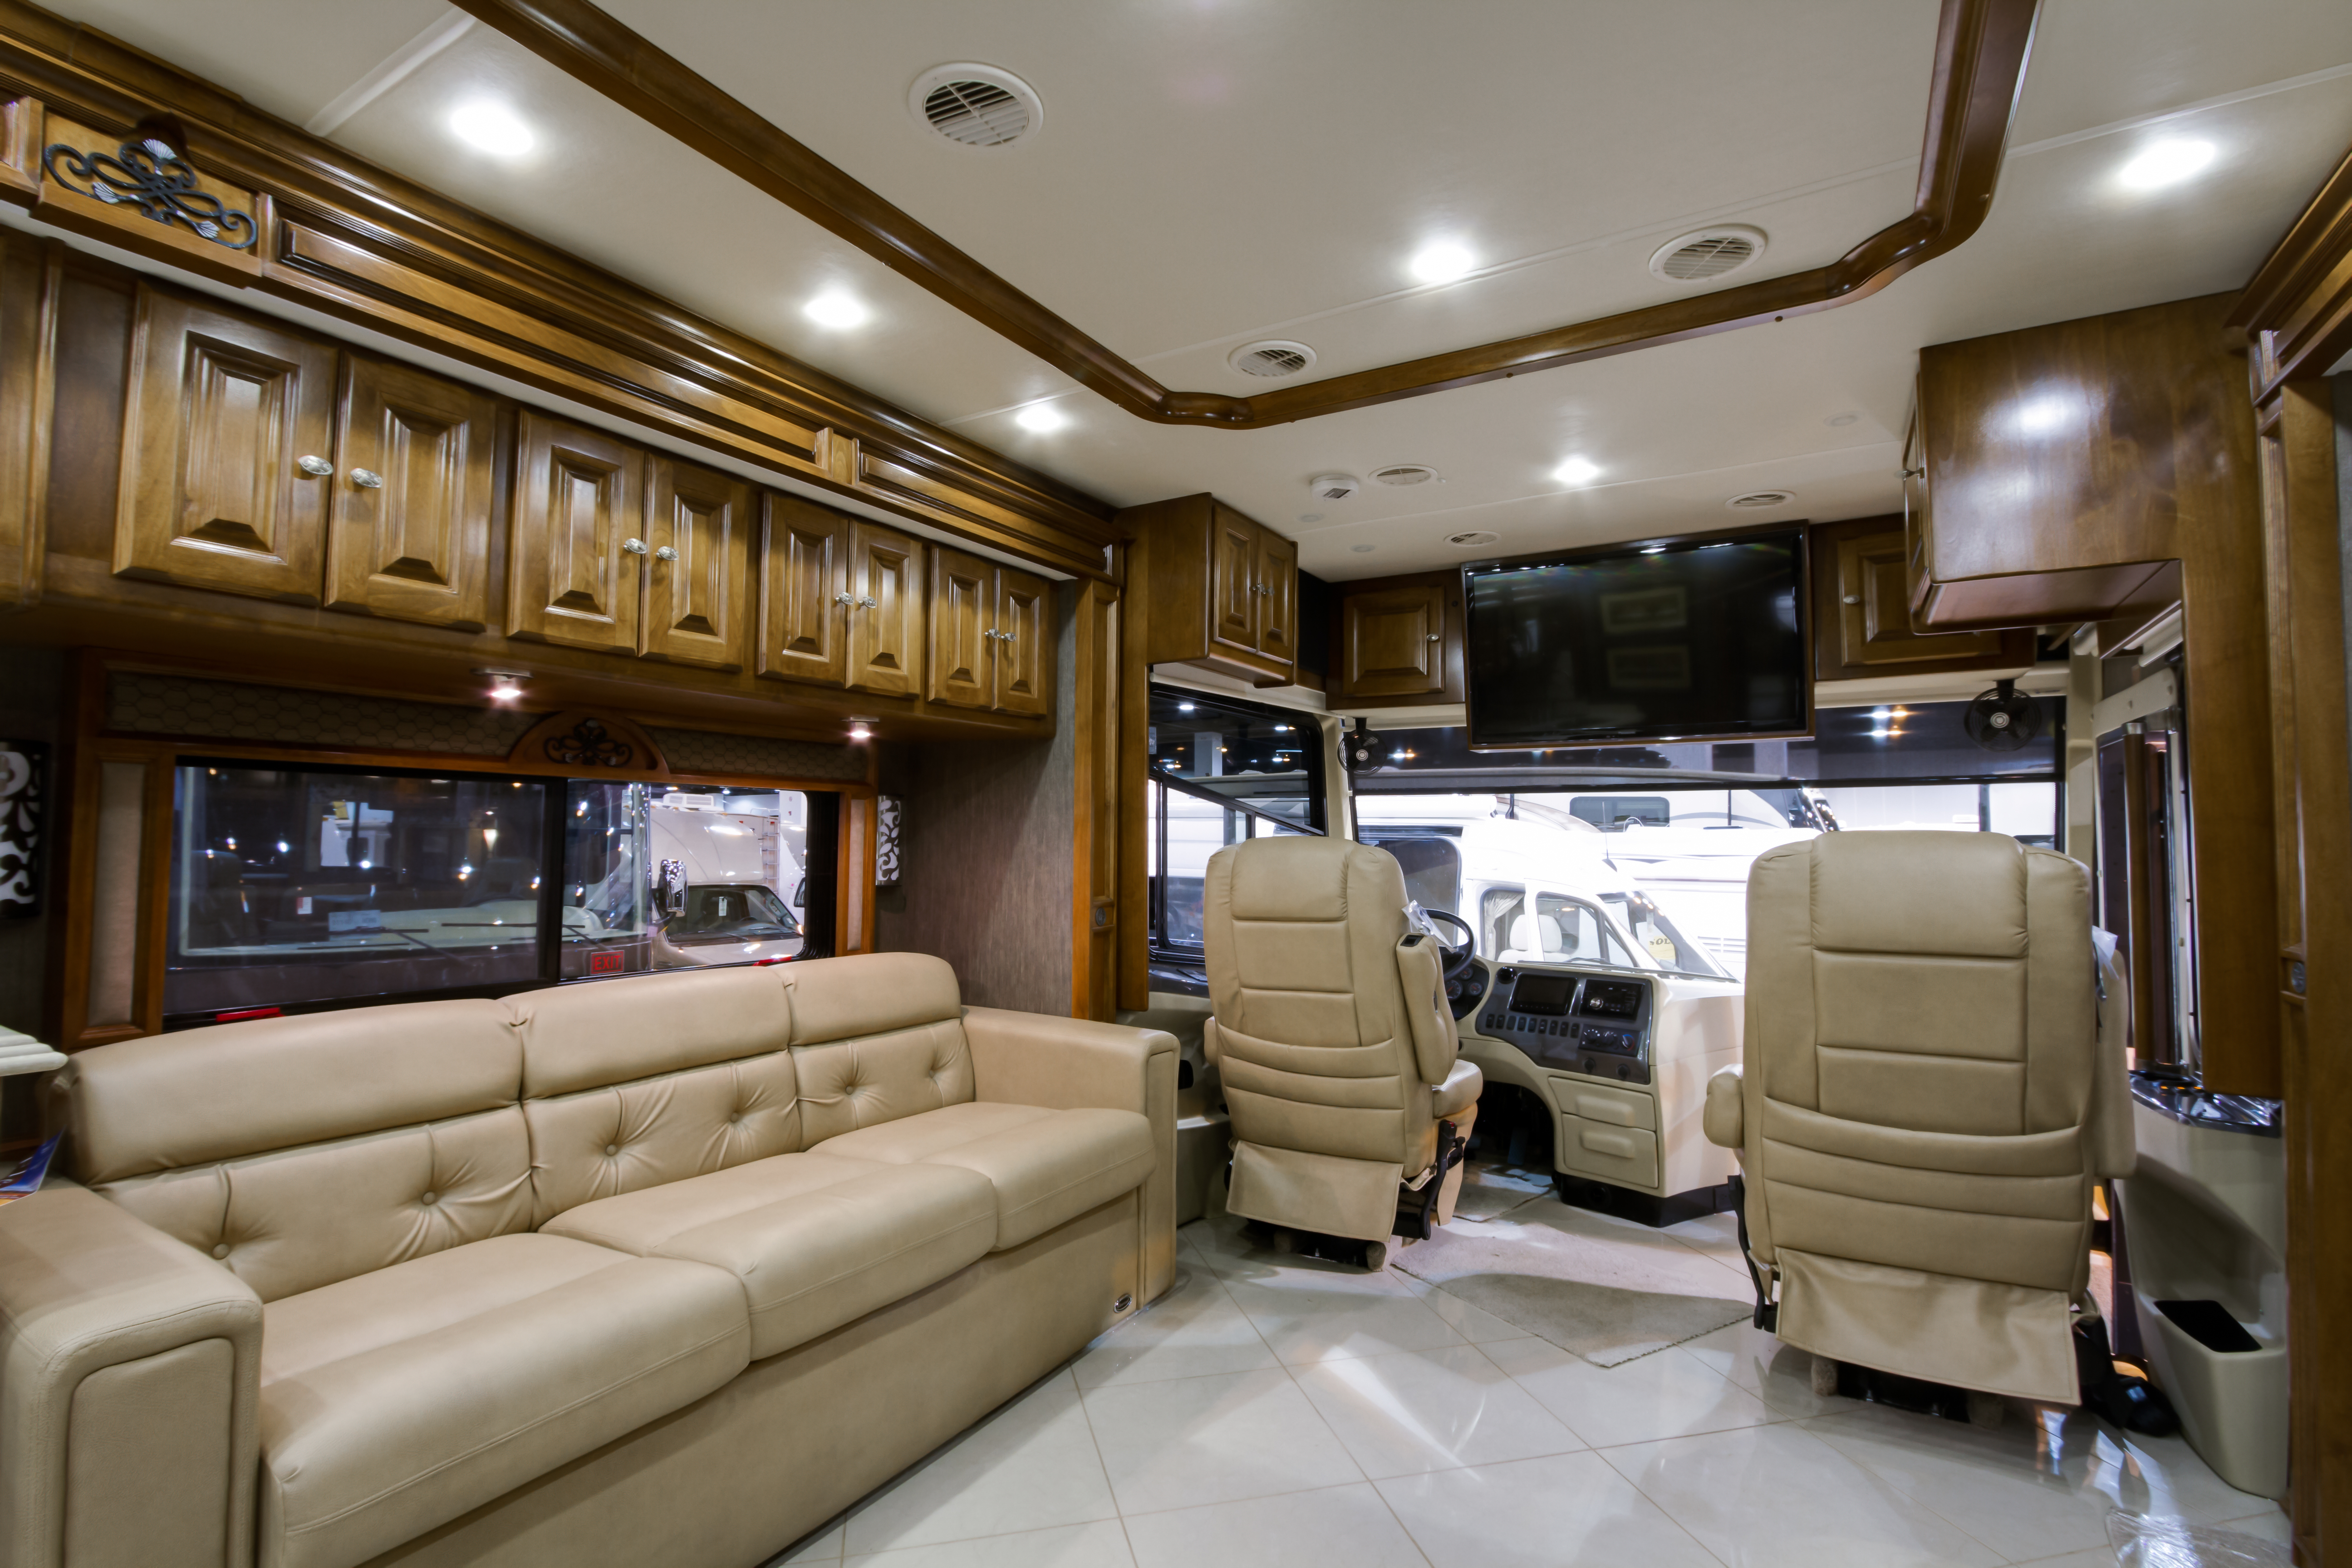 luxury-rv-motorhome-interior